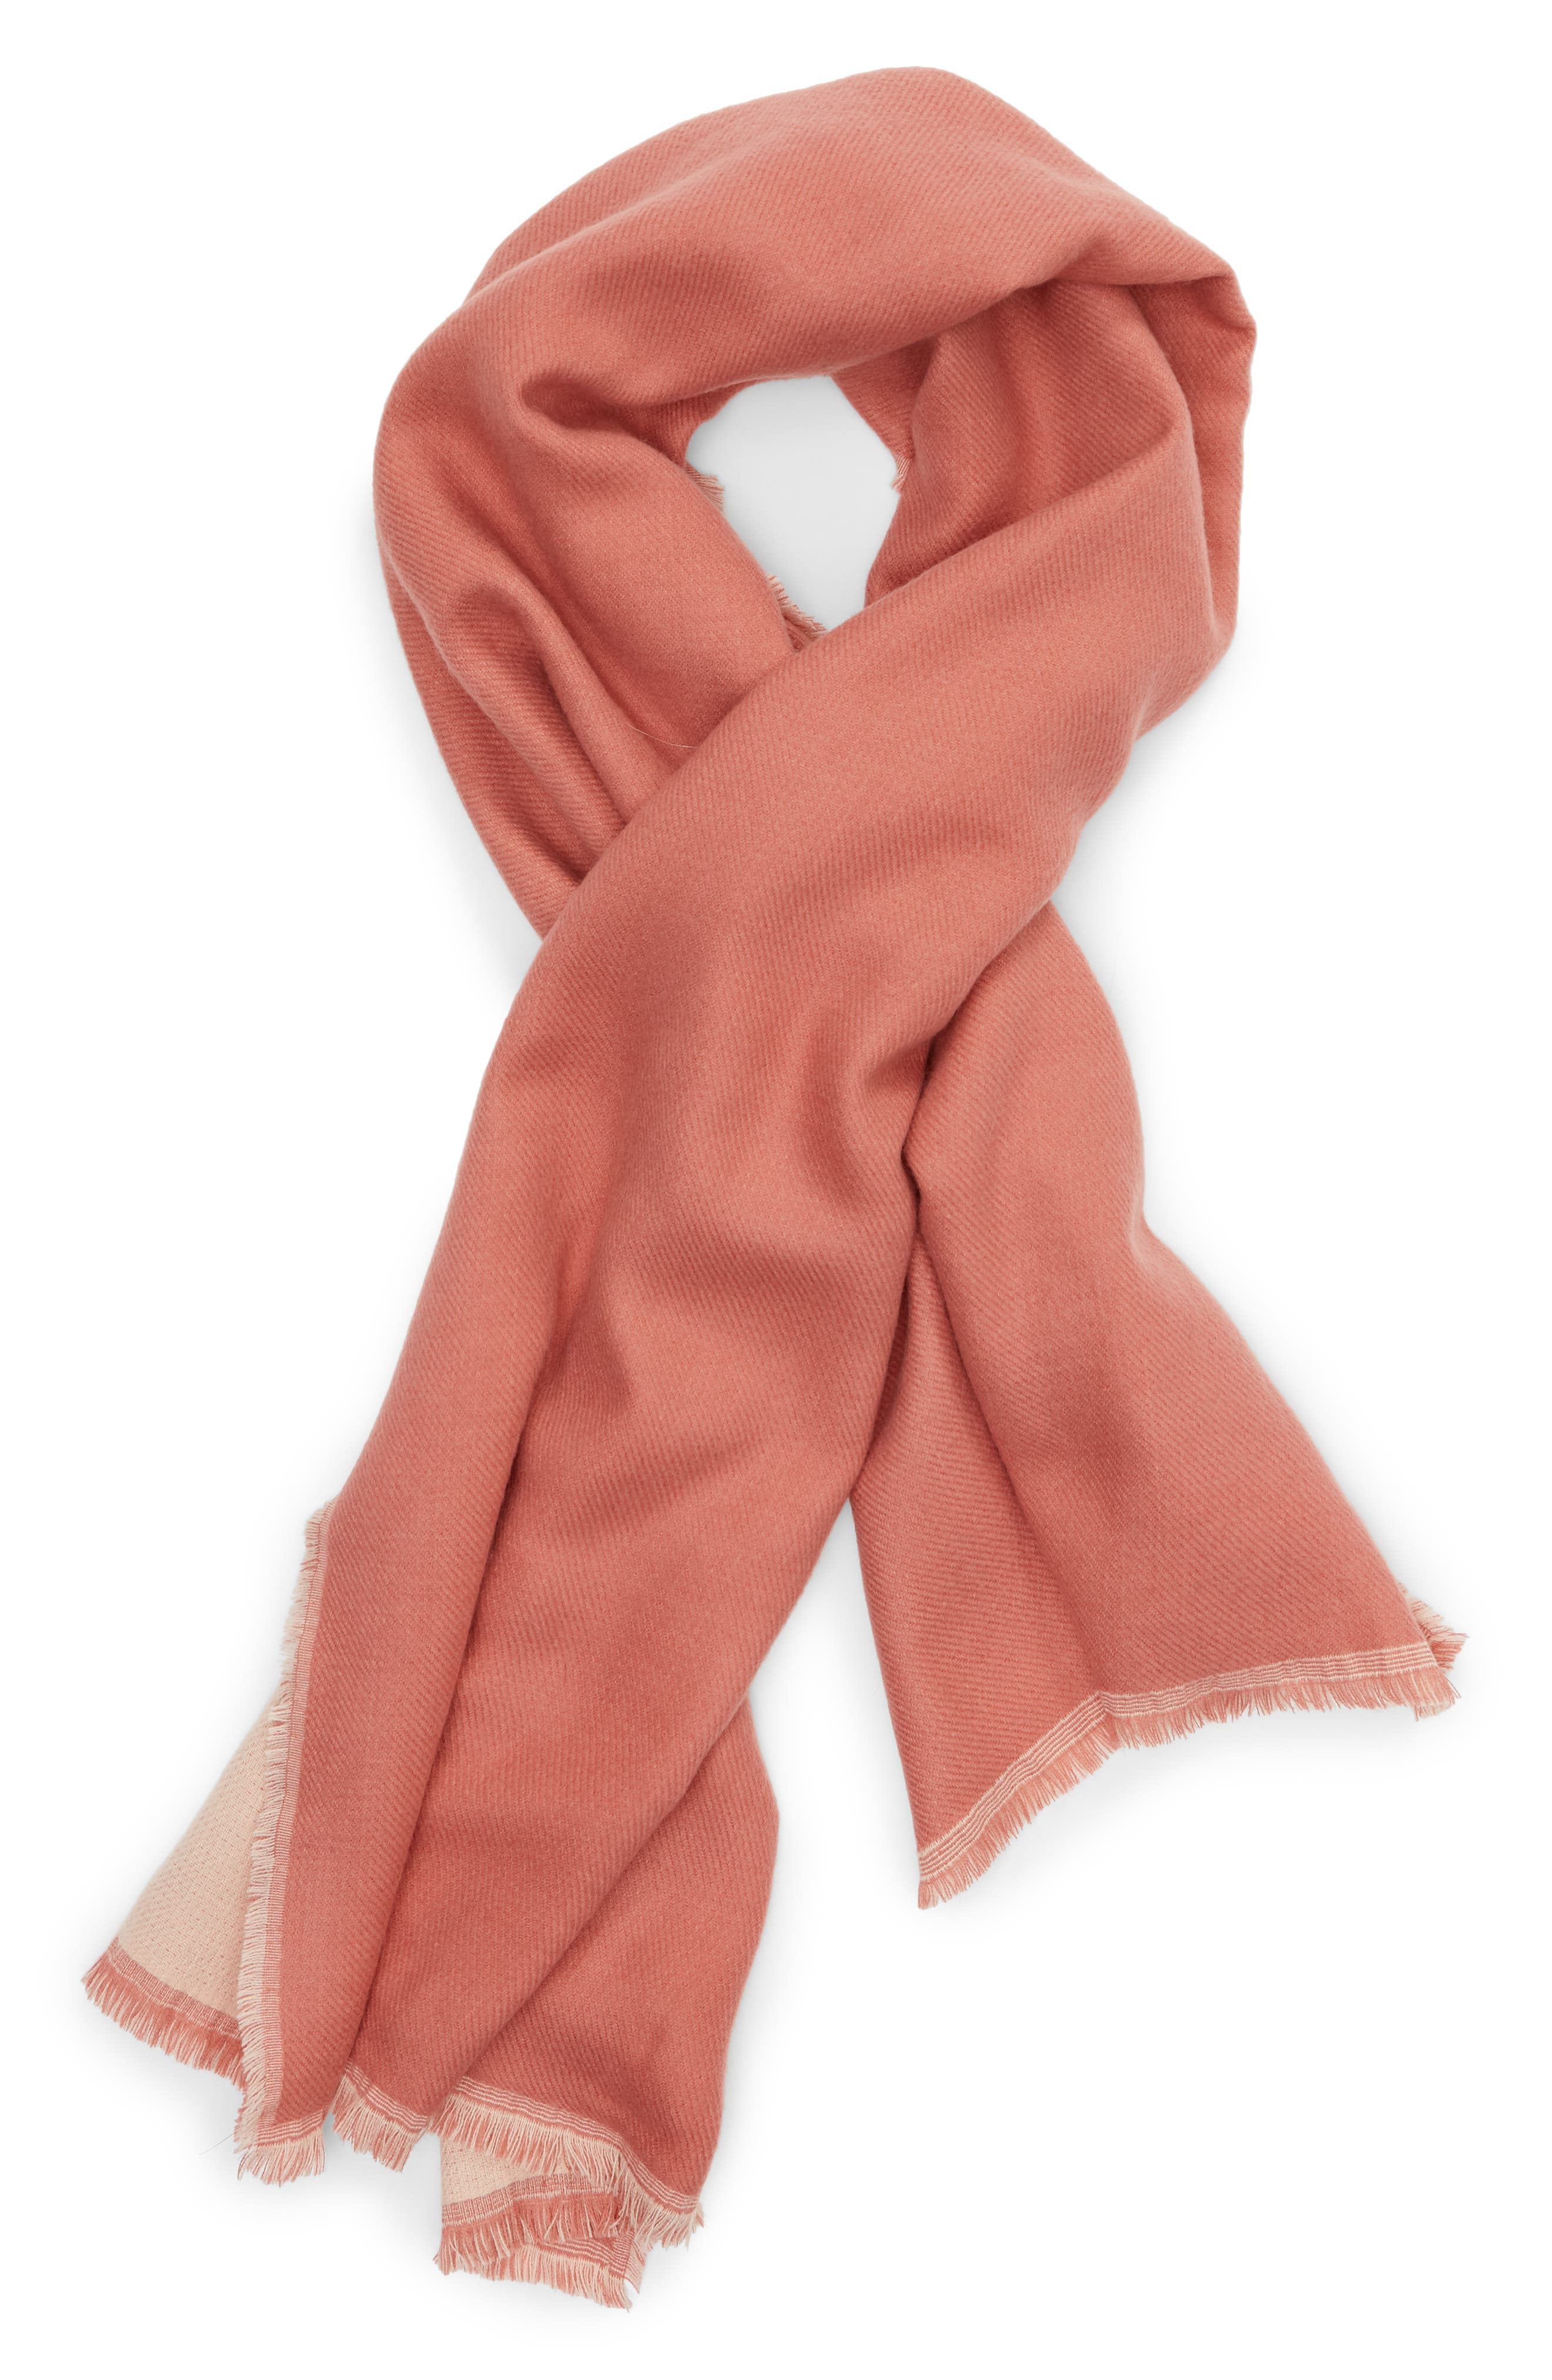 x Atlantic-Pacific Double Sided Blanket Wrap,                             Alternate thumbnail 2, color,                             PINK COMBO